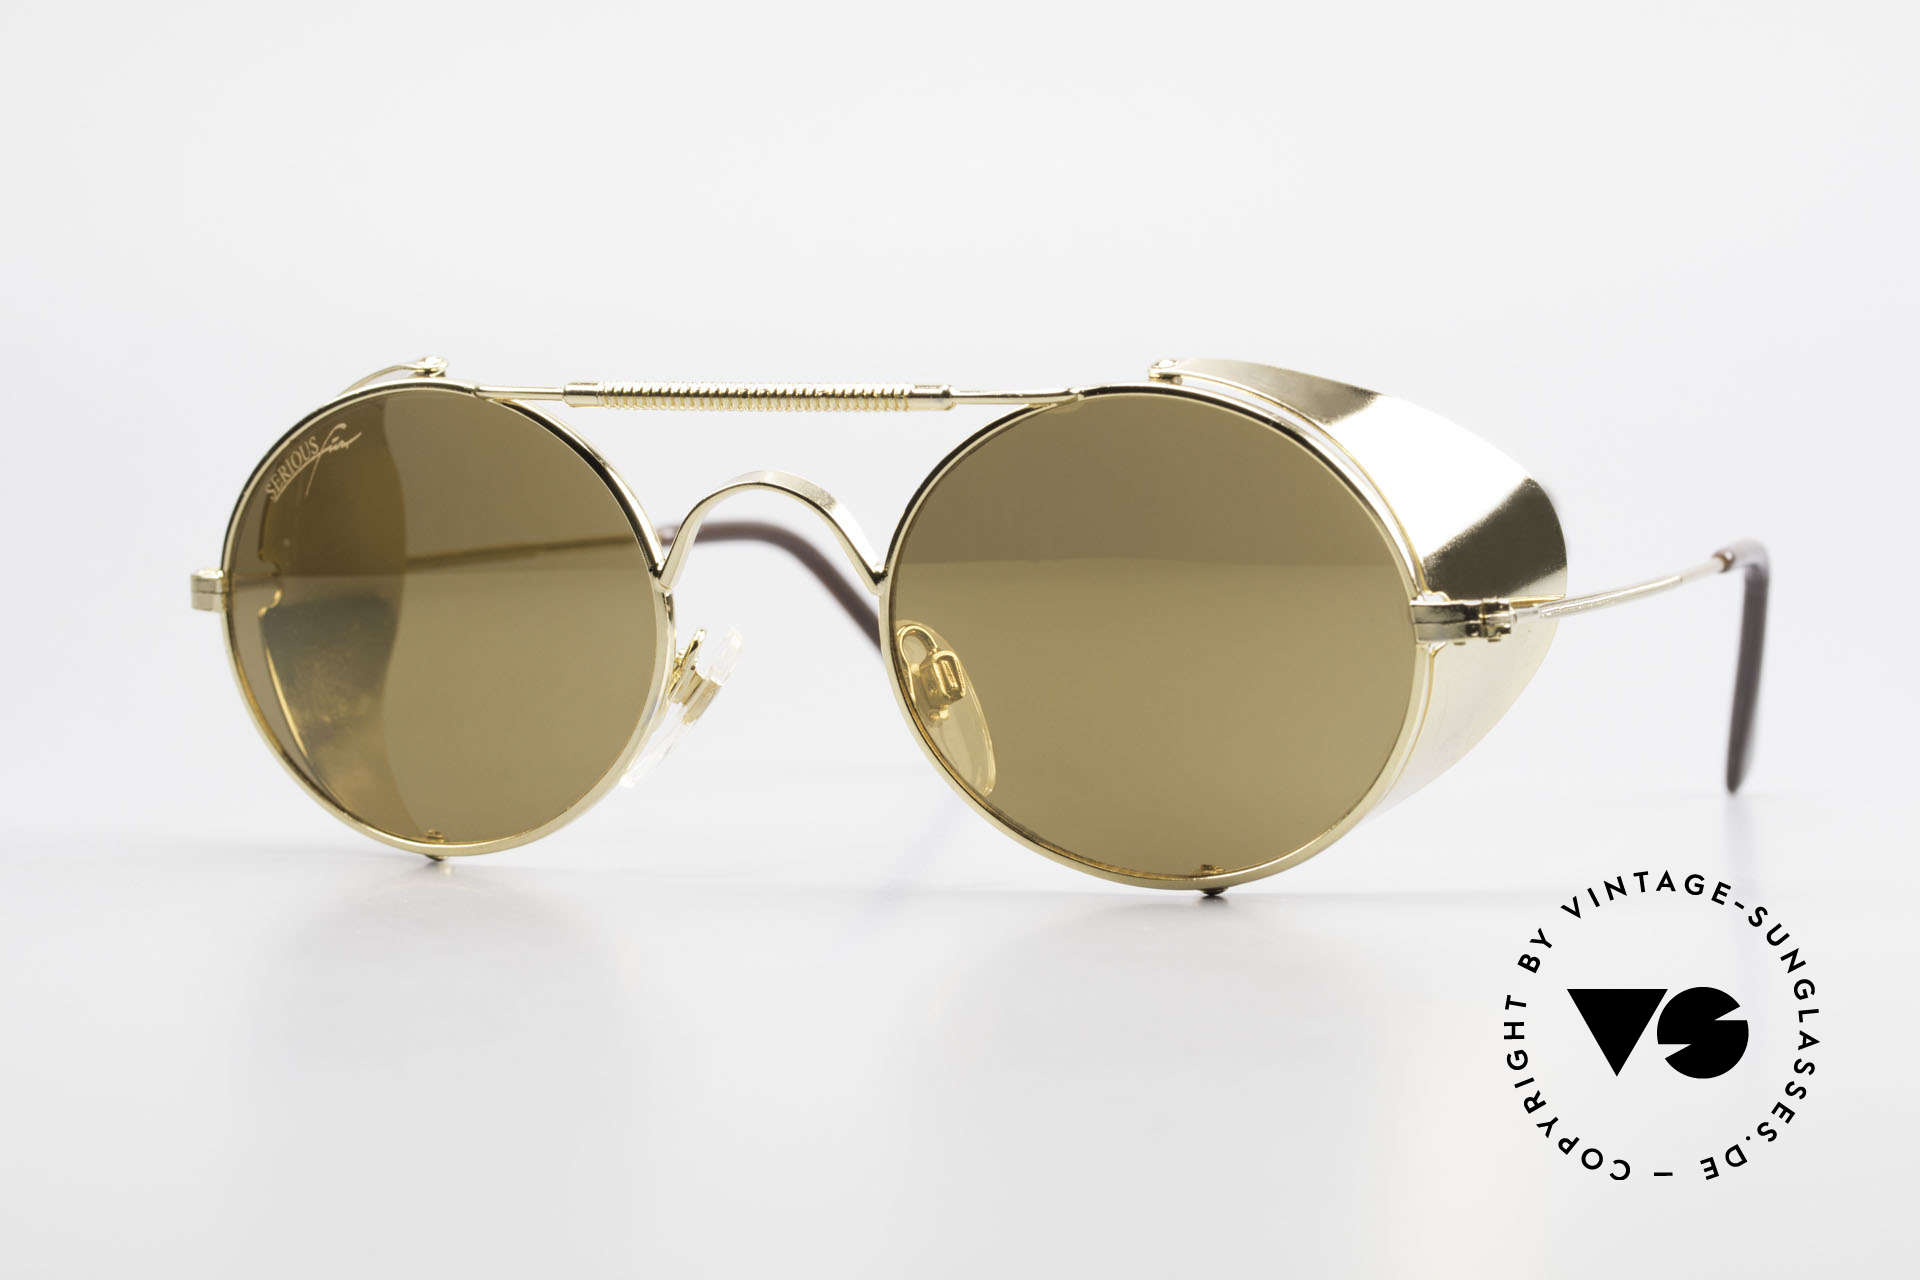 Serious Fun Frogman Steampunk Sunglasses Gold, old Serious Fun by Alpina sunglasses; model Frogman, Made for Men and Women